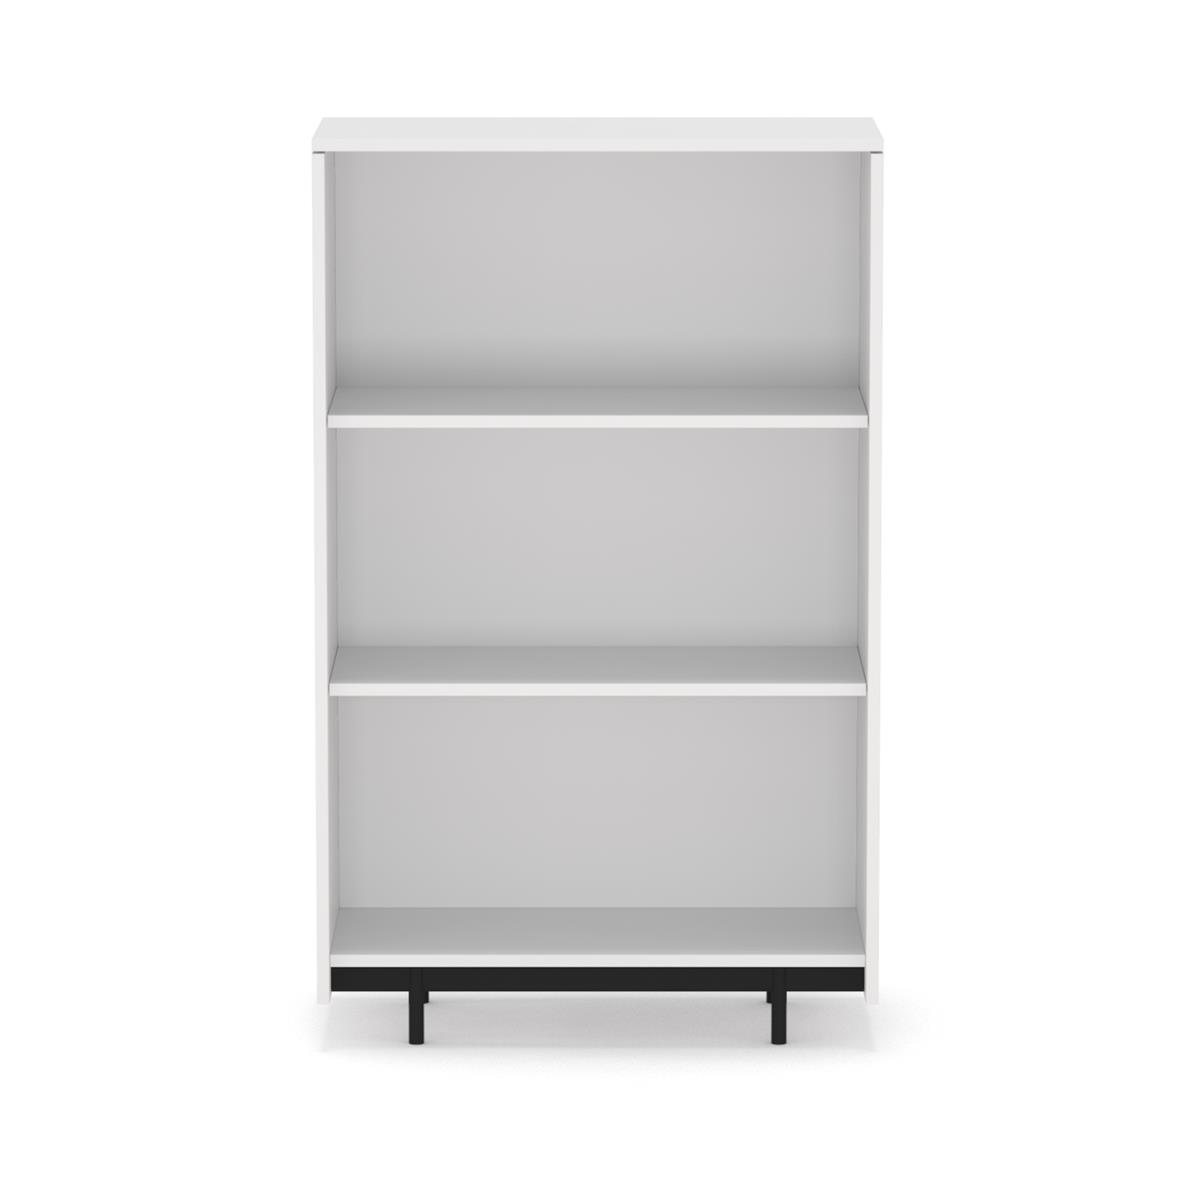 O3 Floating Cabinet - Tall Open, hvit & antrasitt